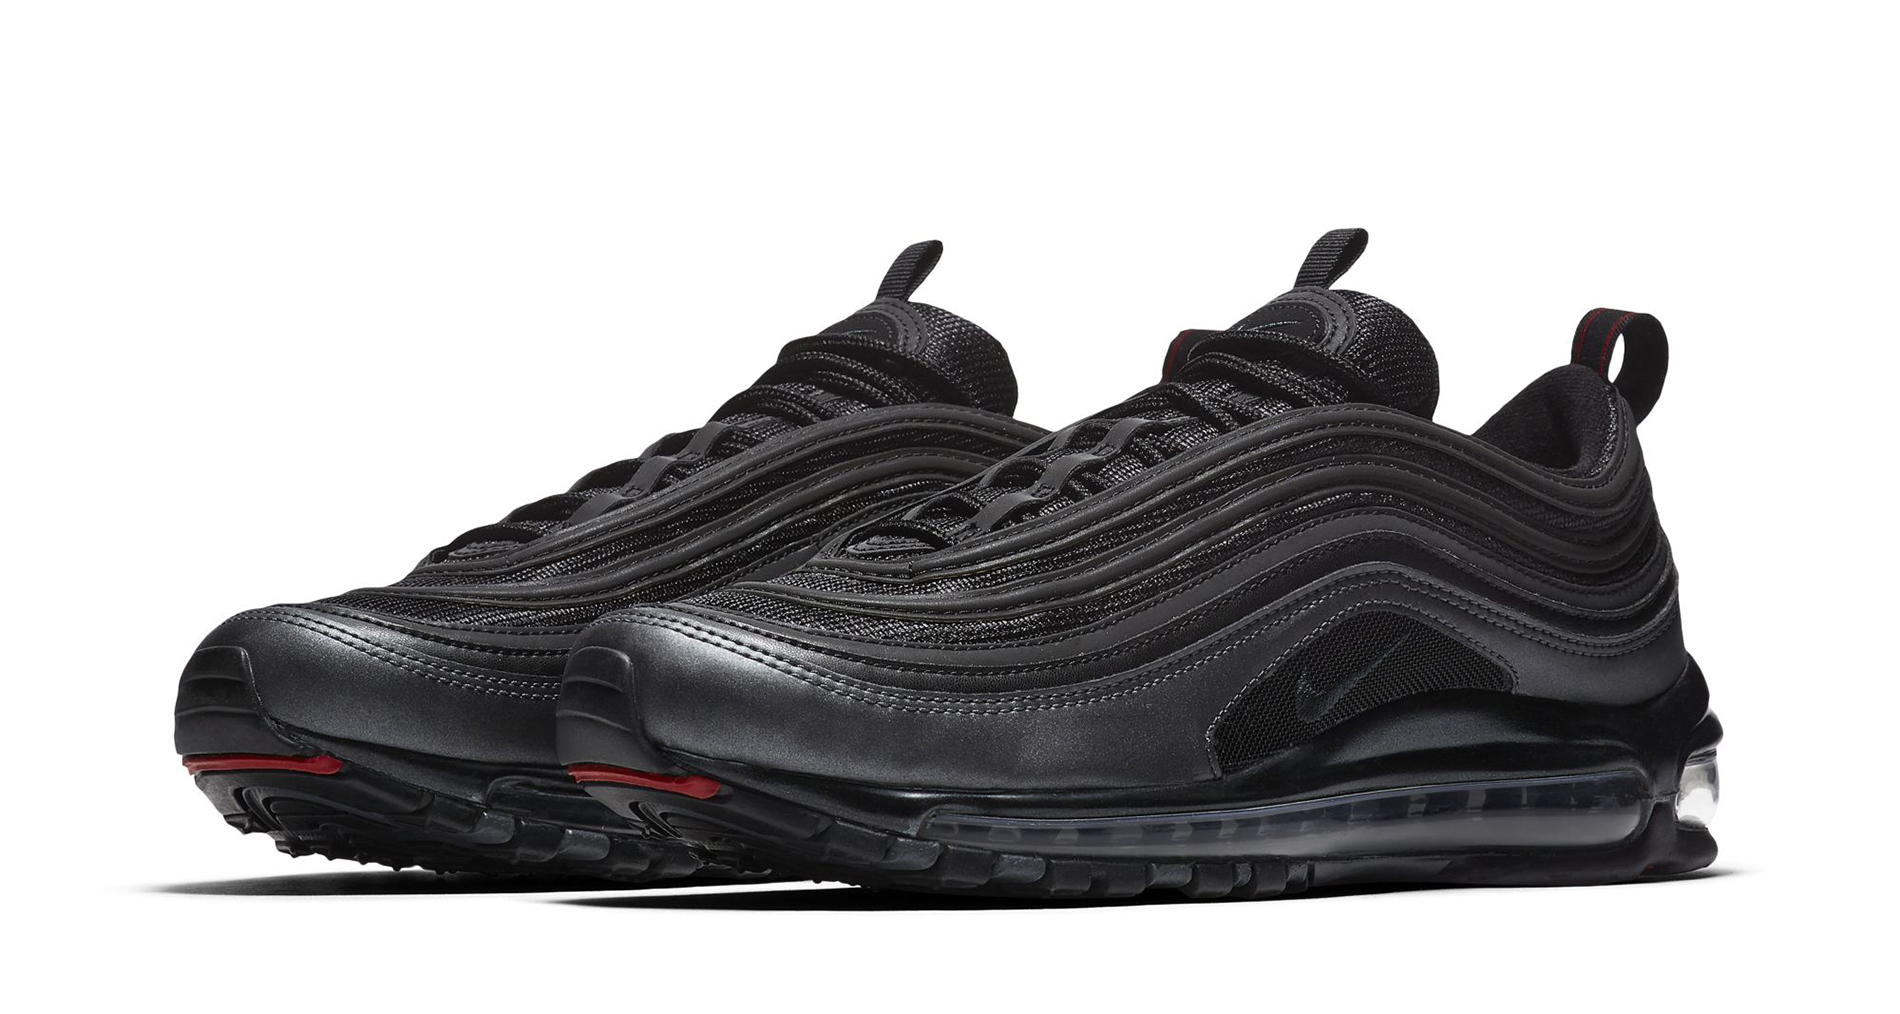 nike air max 97 black university red preview. Black Bedroom Furniture Sets. Home Design Ideas